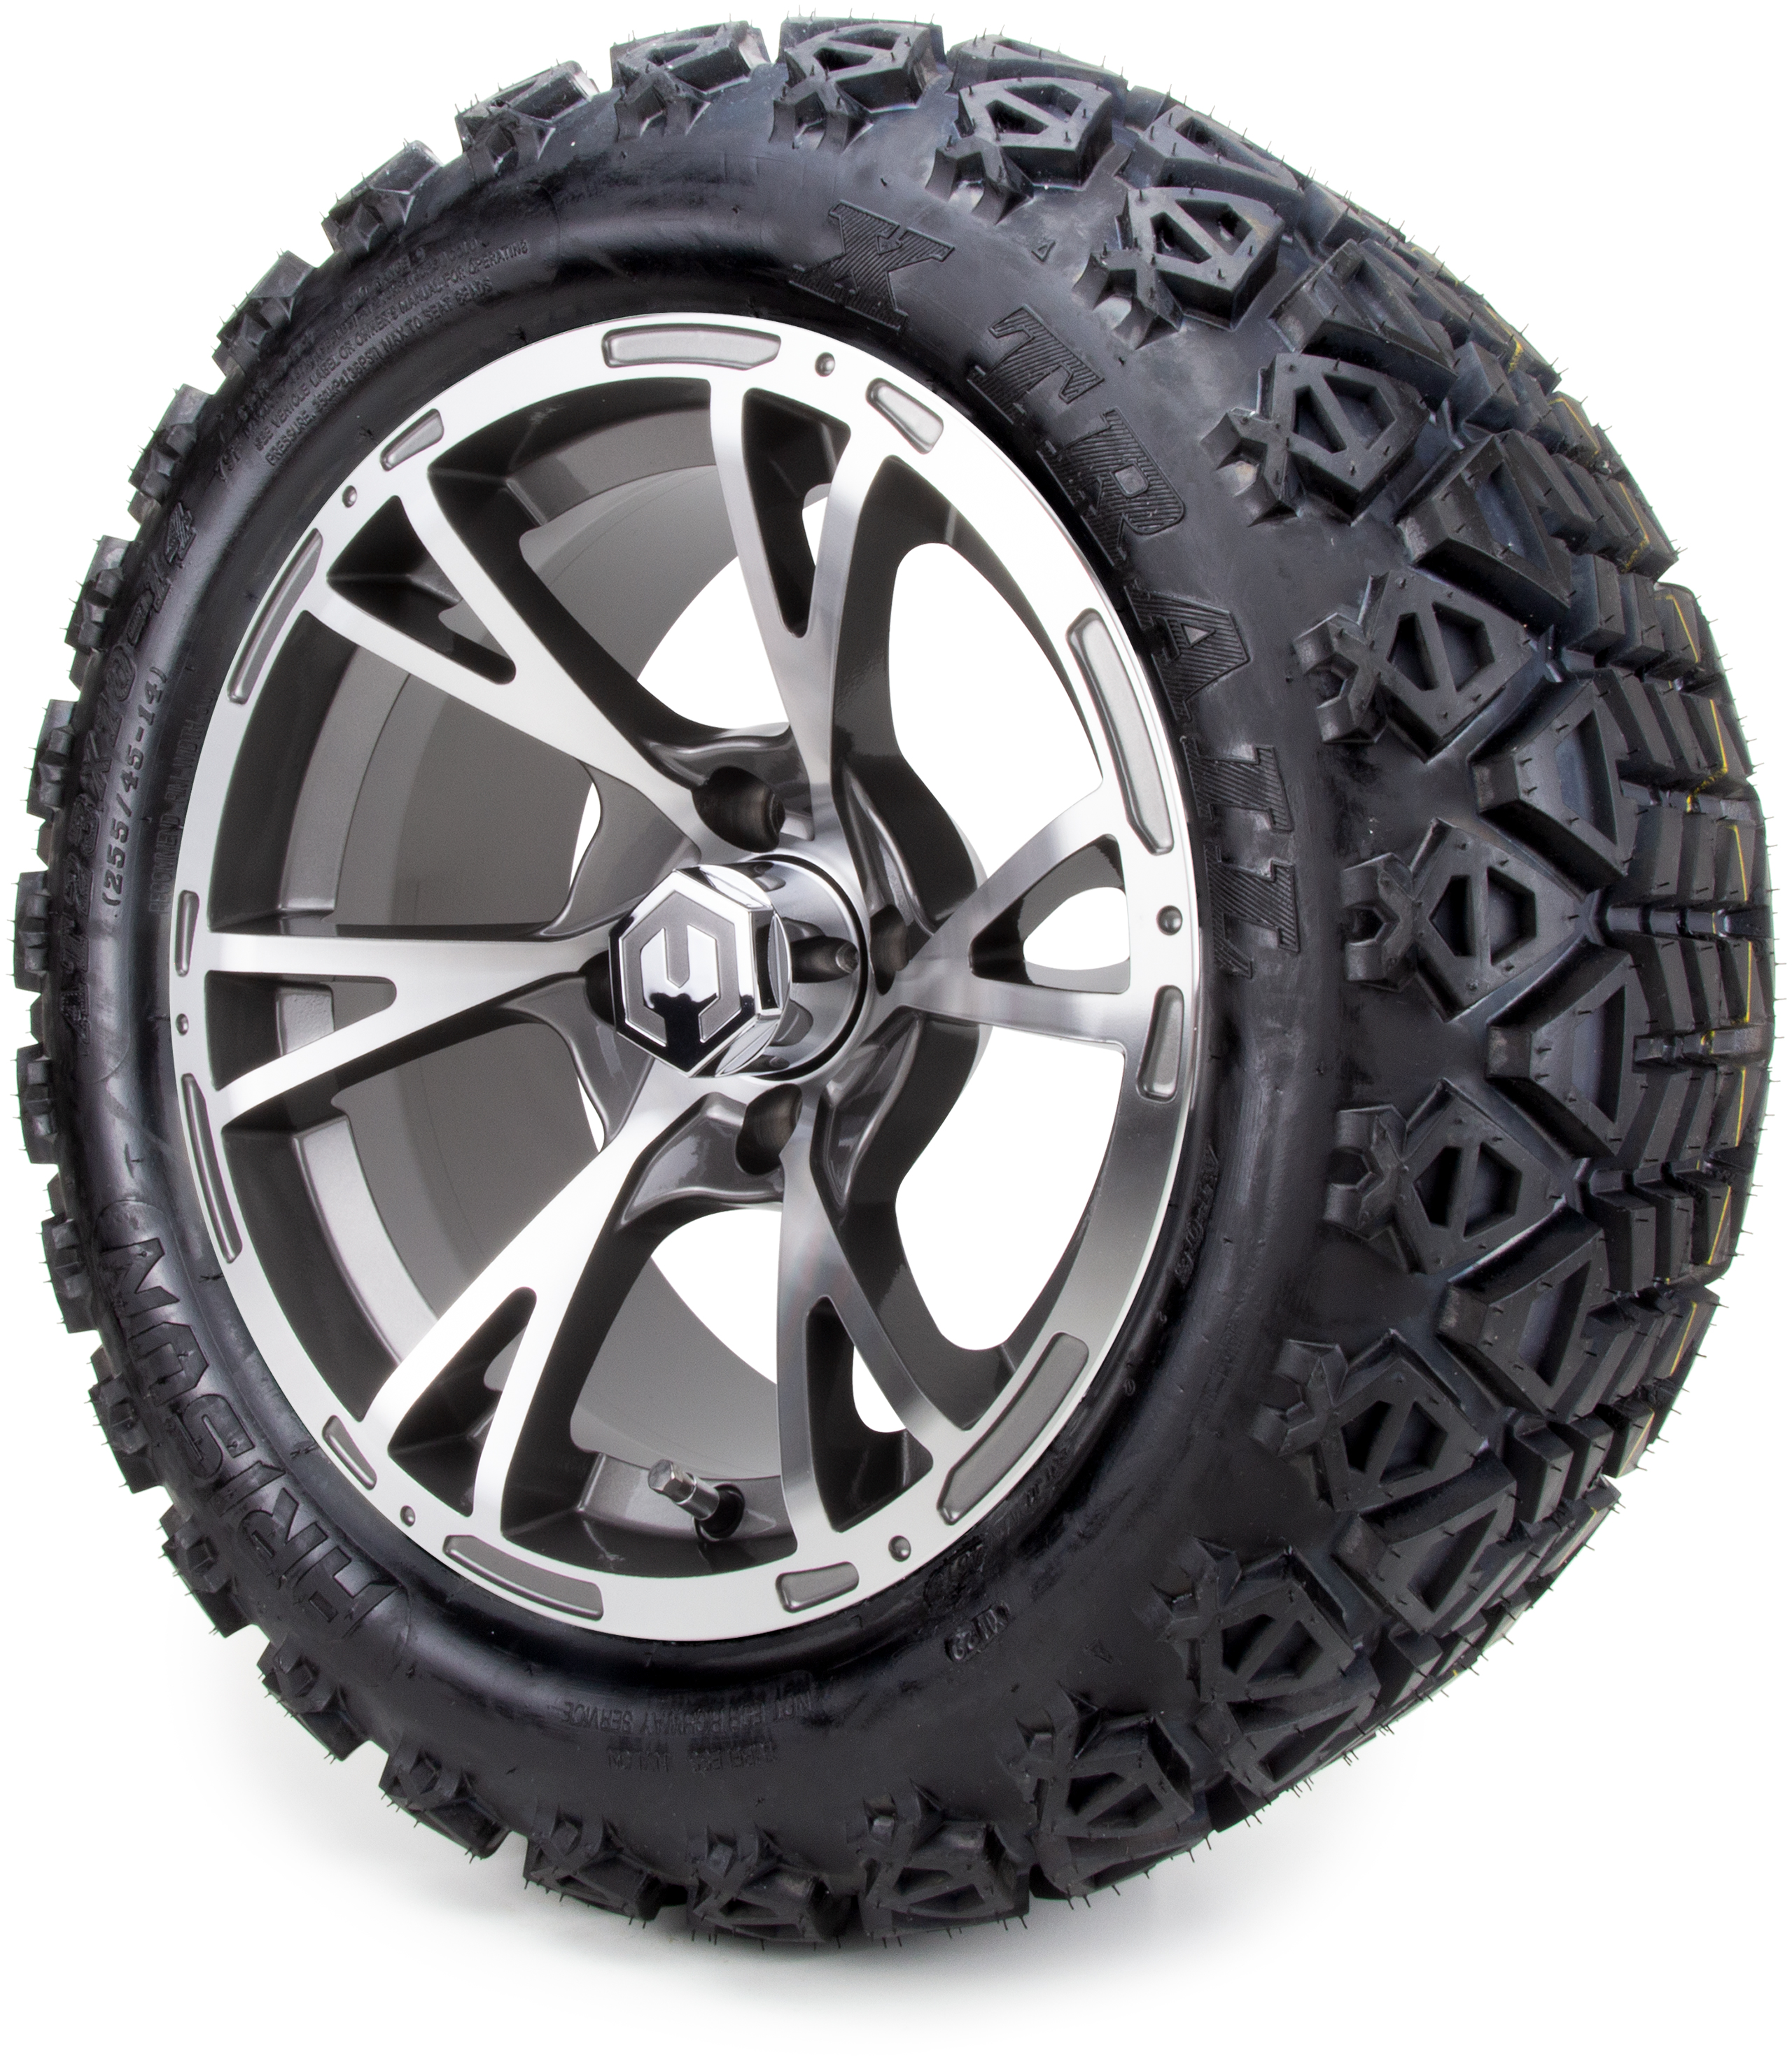 All Terrain Tires >> 14 Modz Avalanche Gunmetal And Black Golf Cart Wheels All Terrain Tires And A 6 Lift Kit Combo